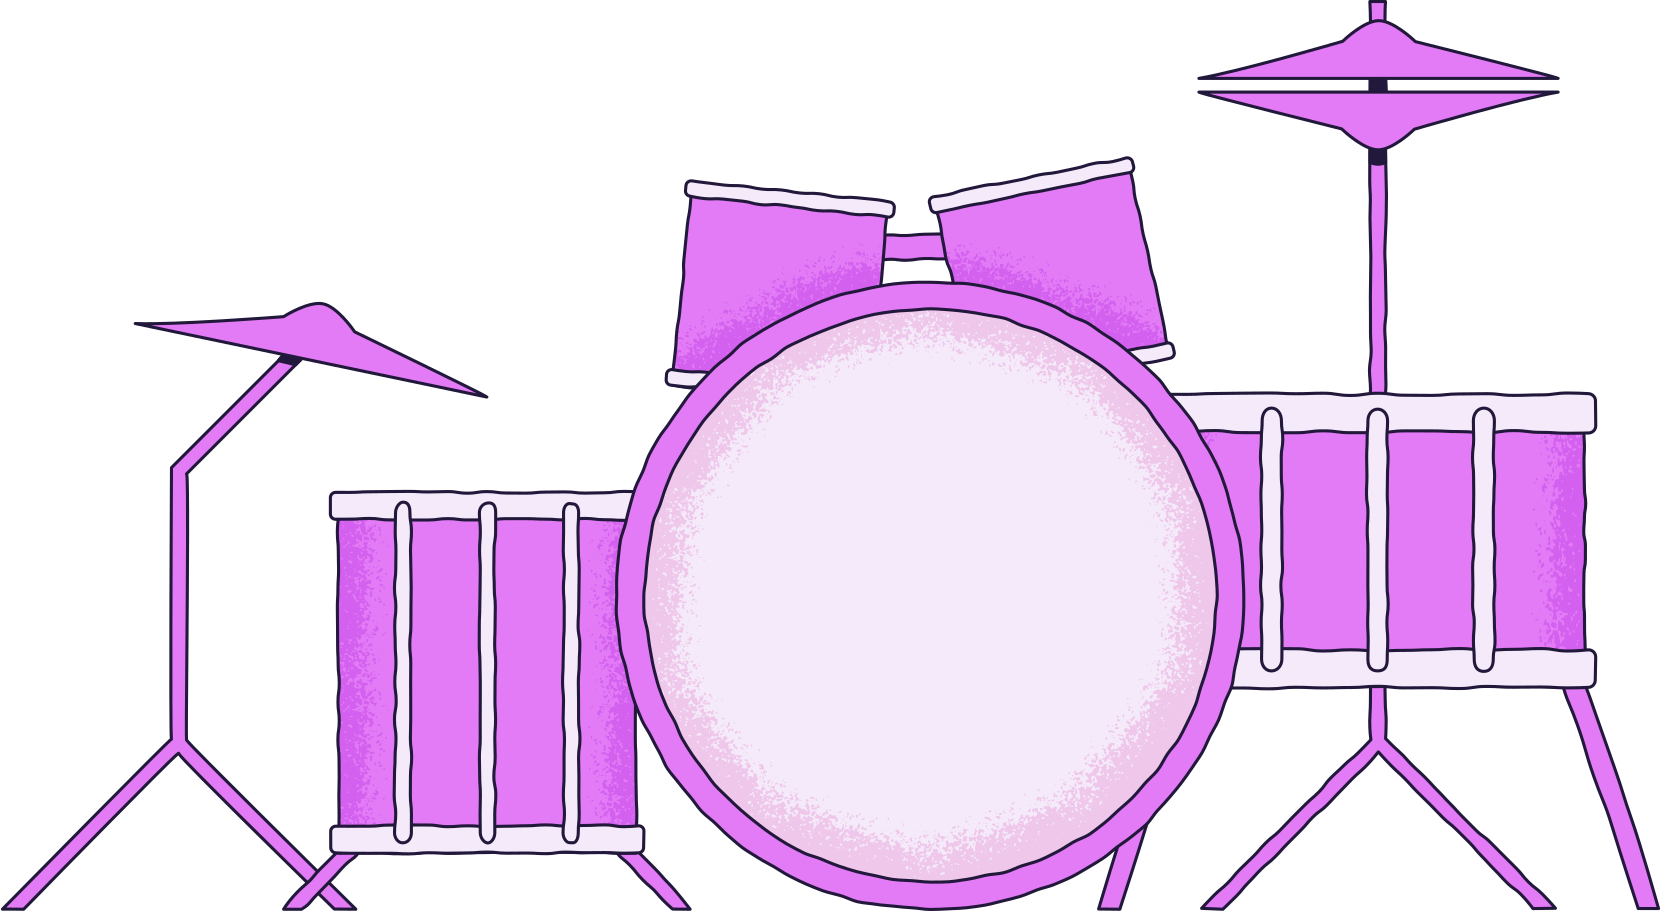 style drum set Vector images in PNG and SVG | Icons8 Illustrations